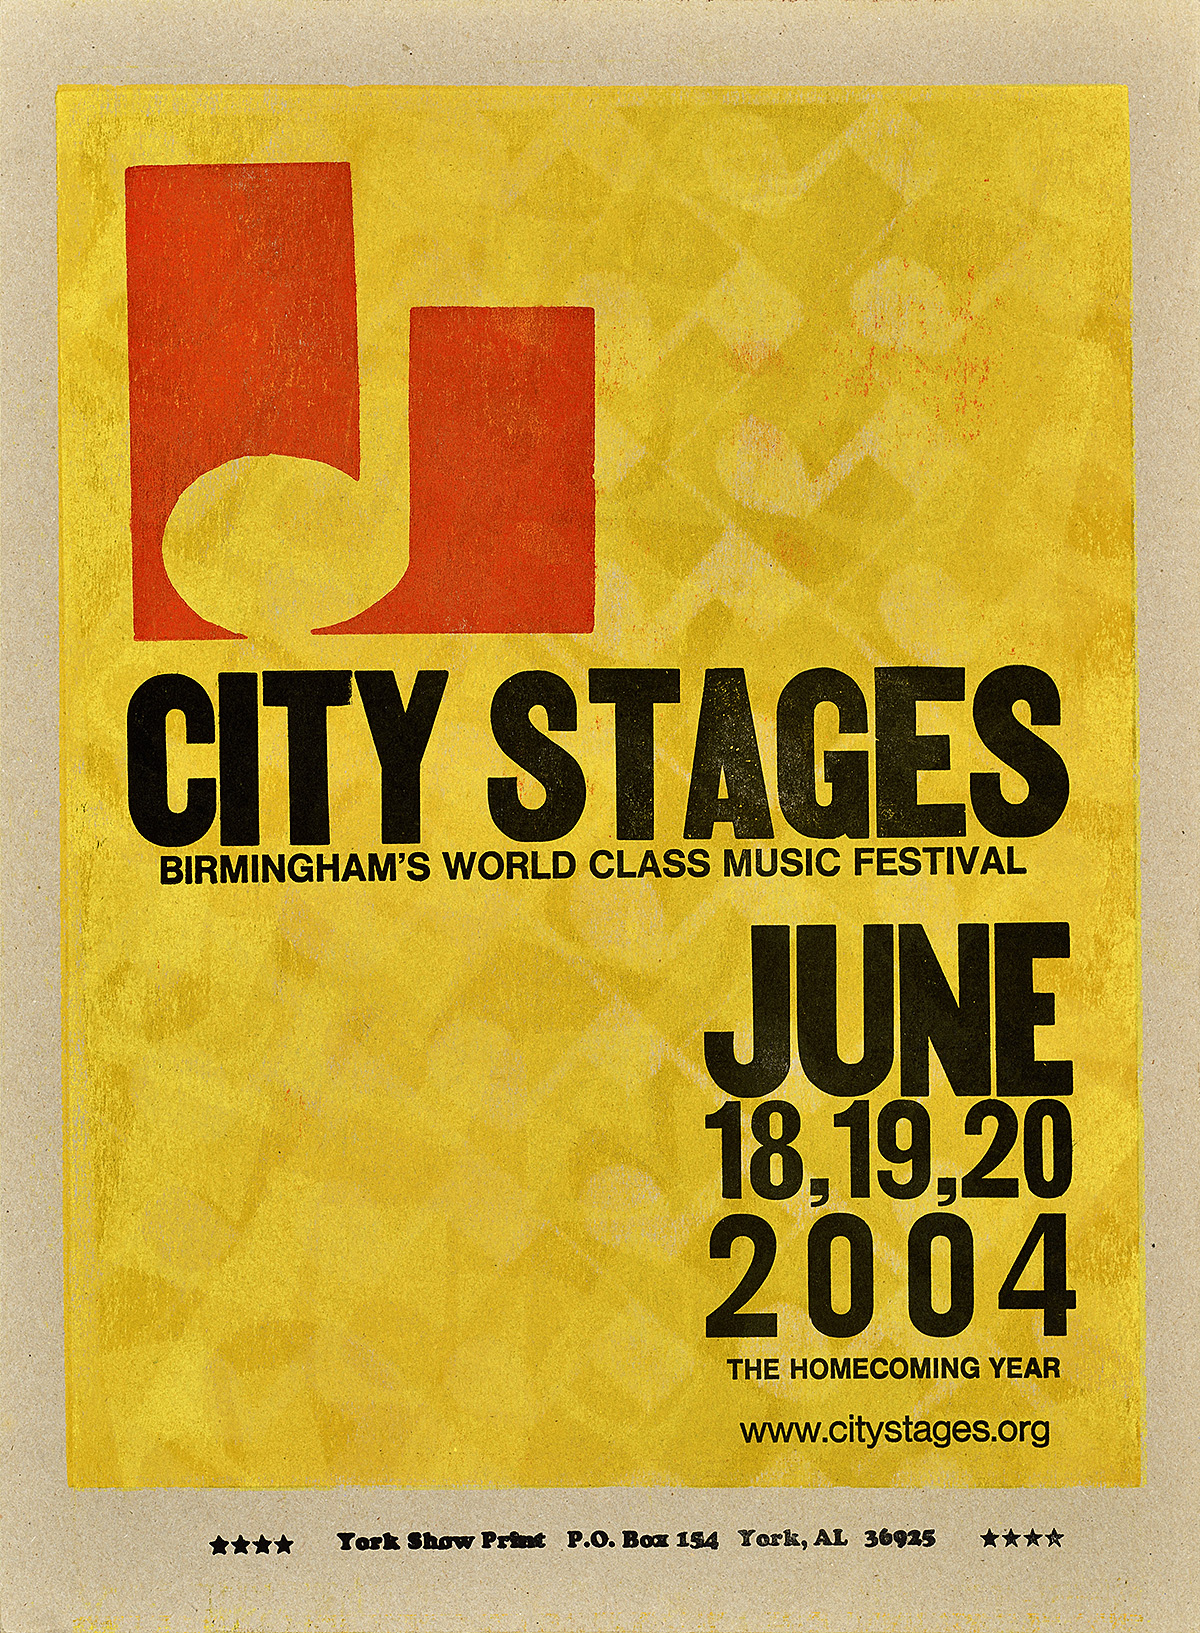 a letterpress poster with a yellow background. In the upper left is the silhouette of a music note surrounded by red. the central black text reads City Stages